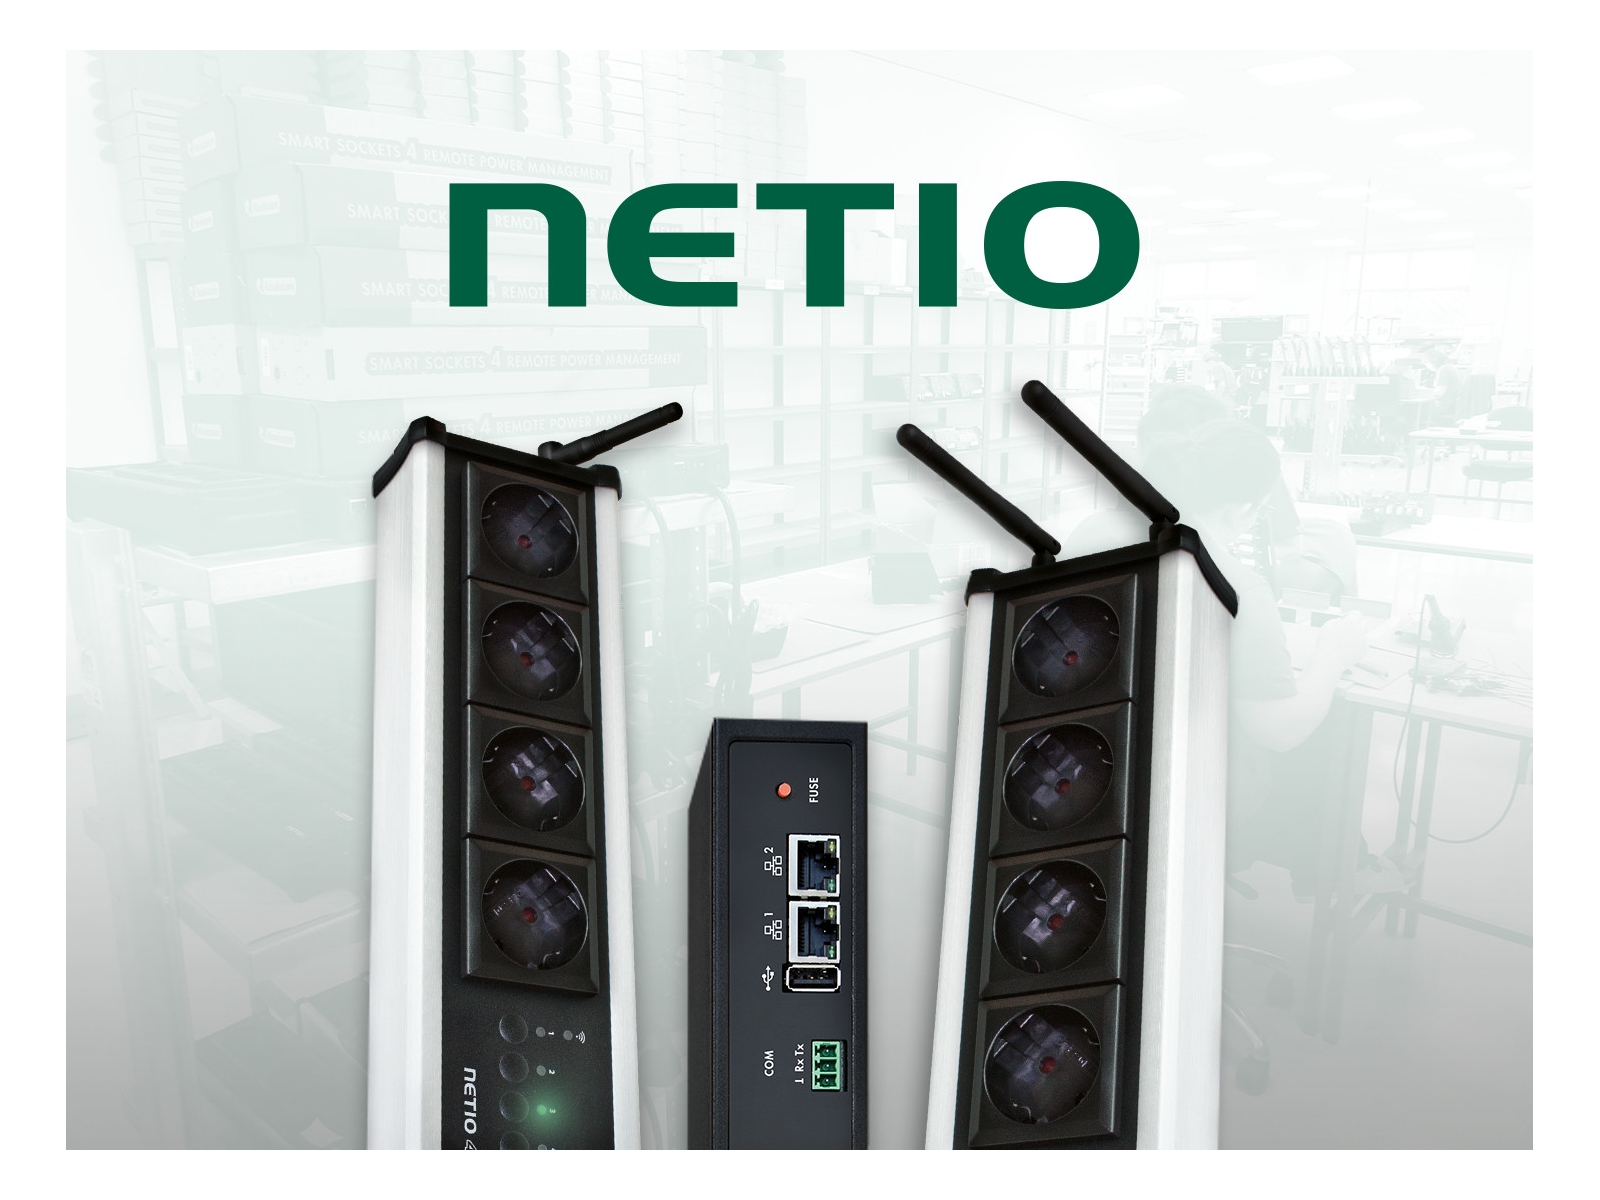 NETIO products is european manufacturer of WiFi power outlets